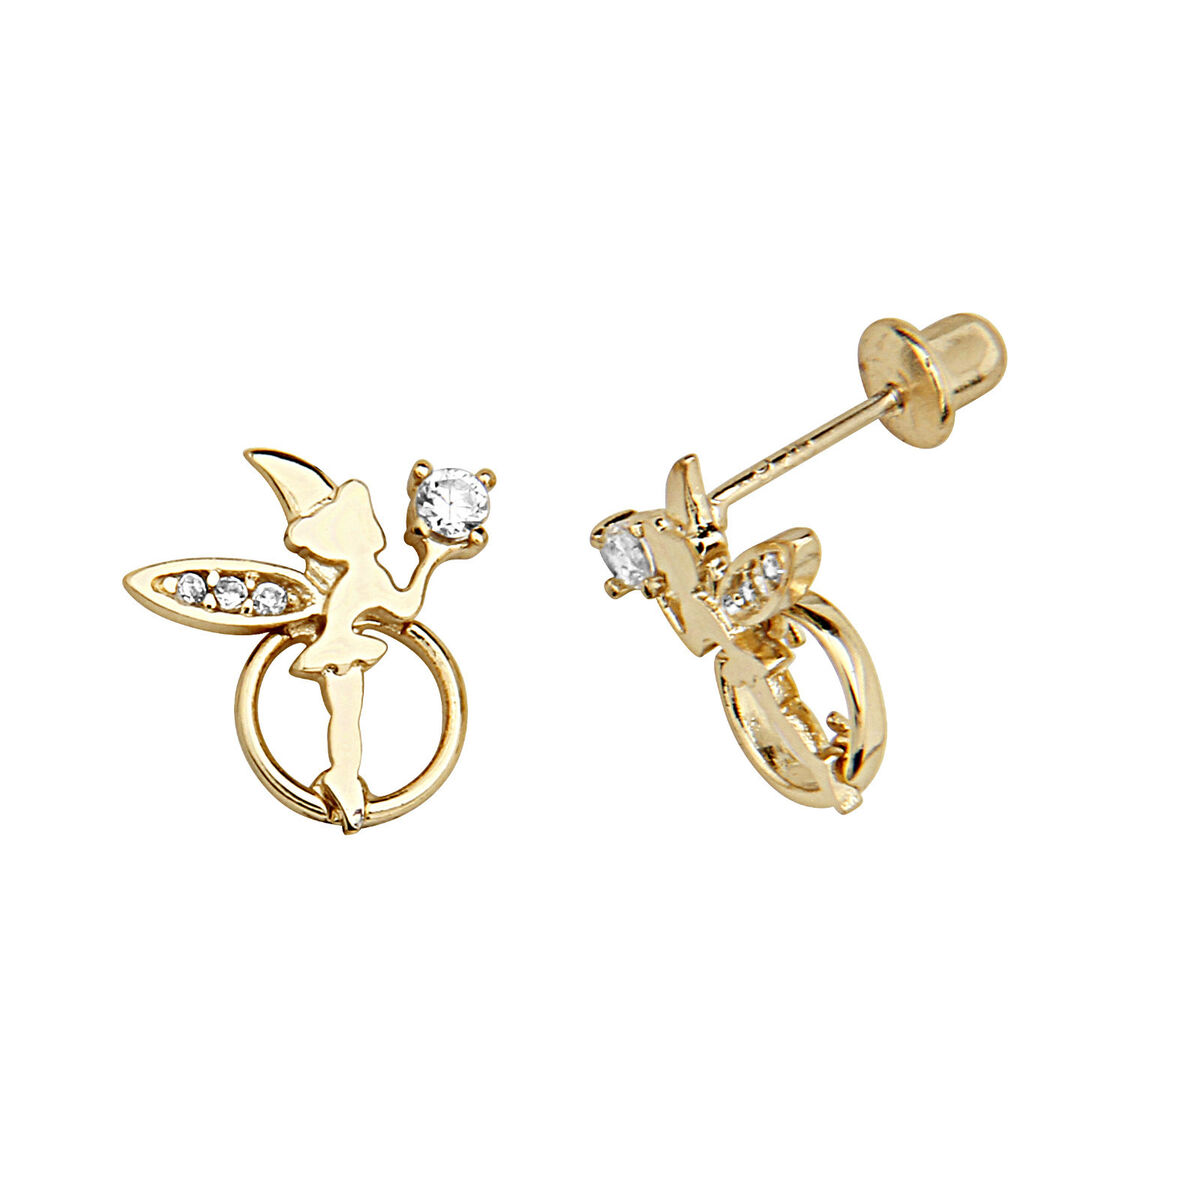 Screw Back Earrings http://www.popscreen.com/p/MTU4MDExNjc2/14K-Gold-Plate-Brass-Silver-Post-Angel-Screw-Back-Earring